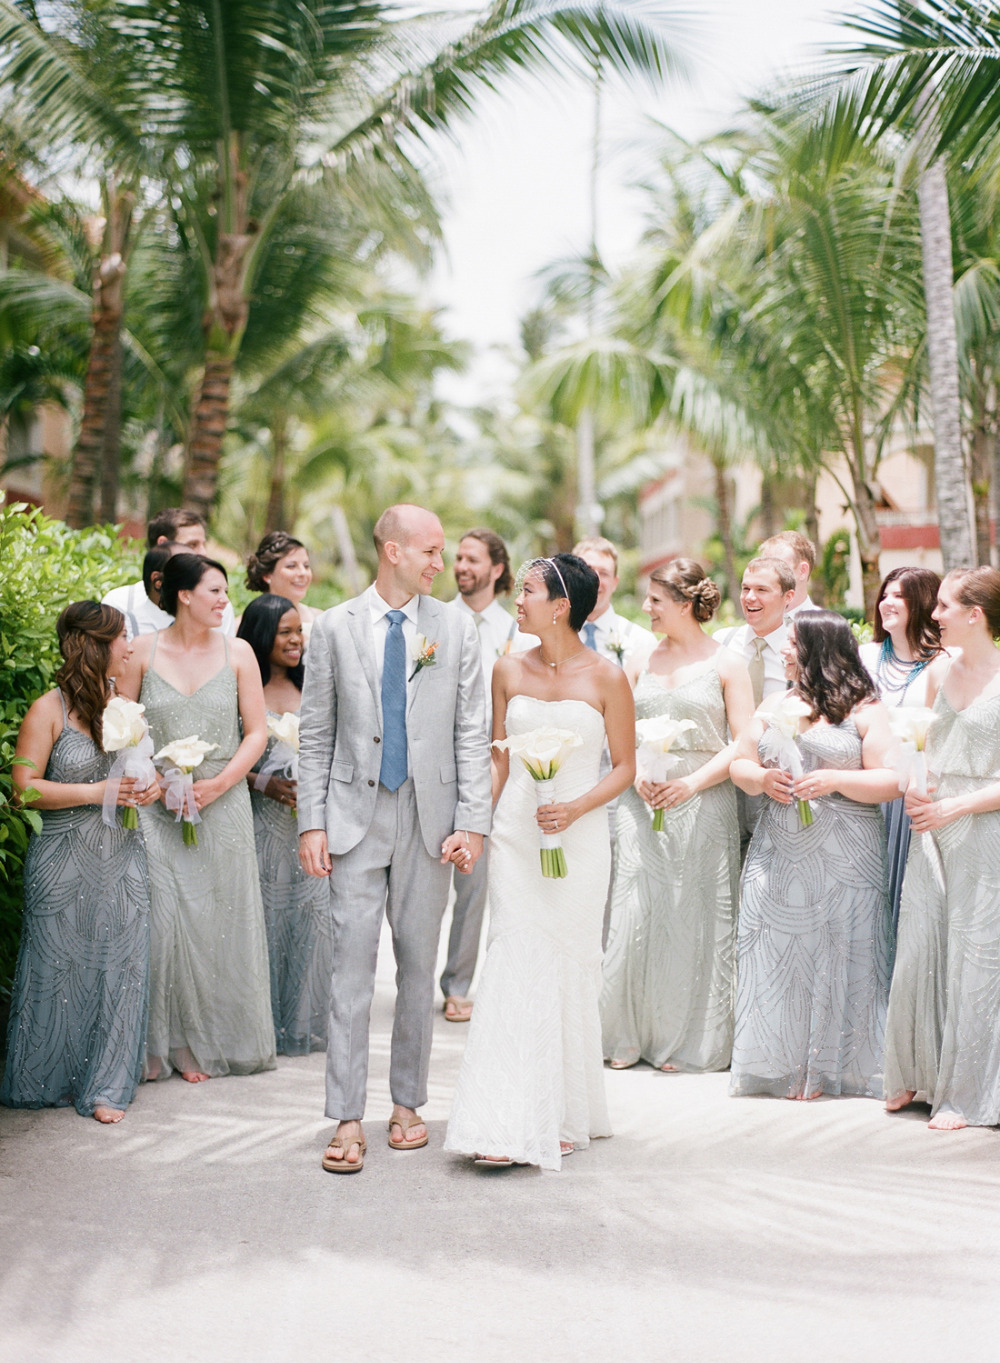 blue and green wedding party attire